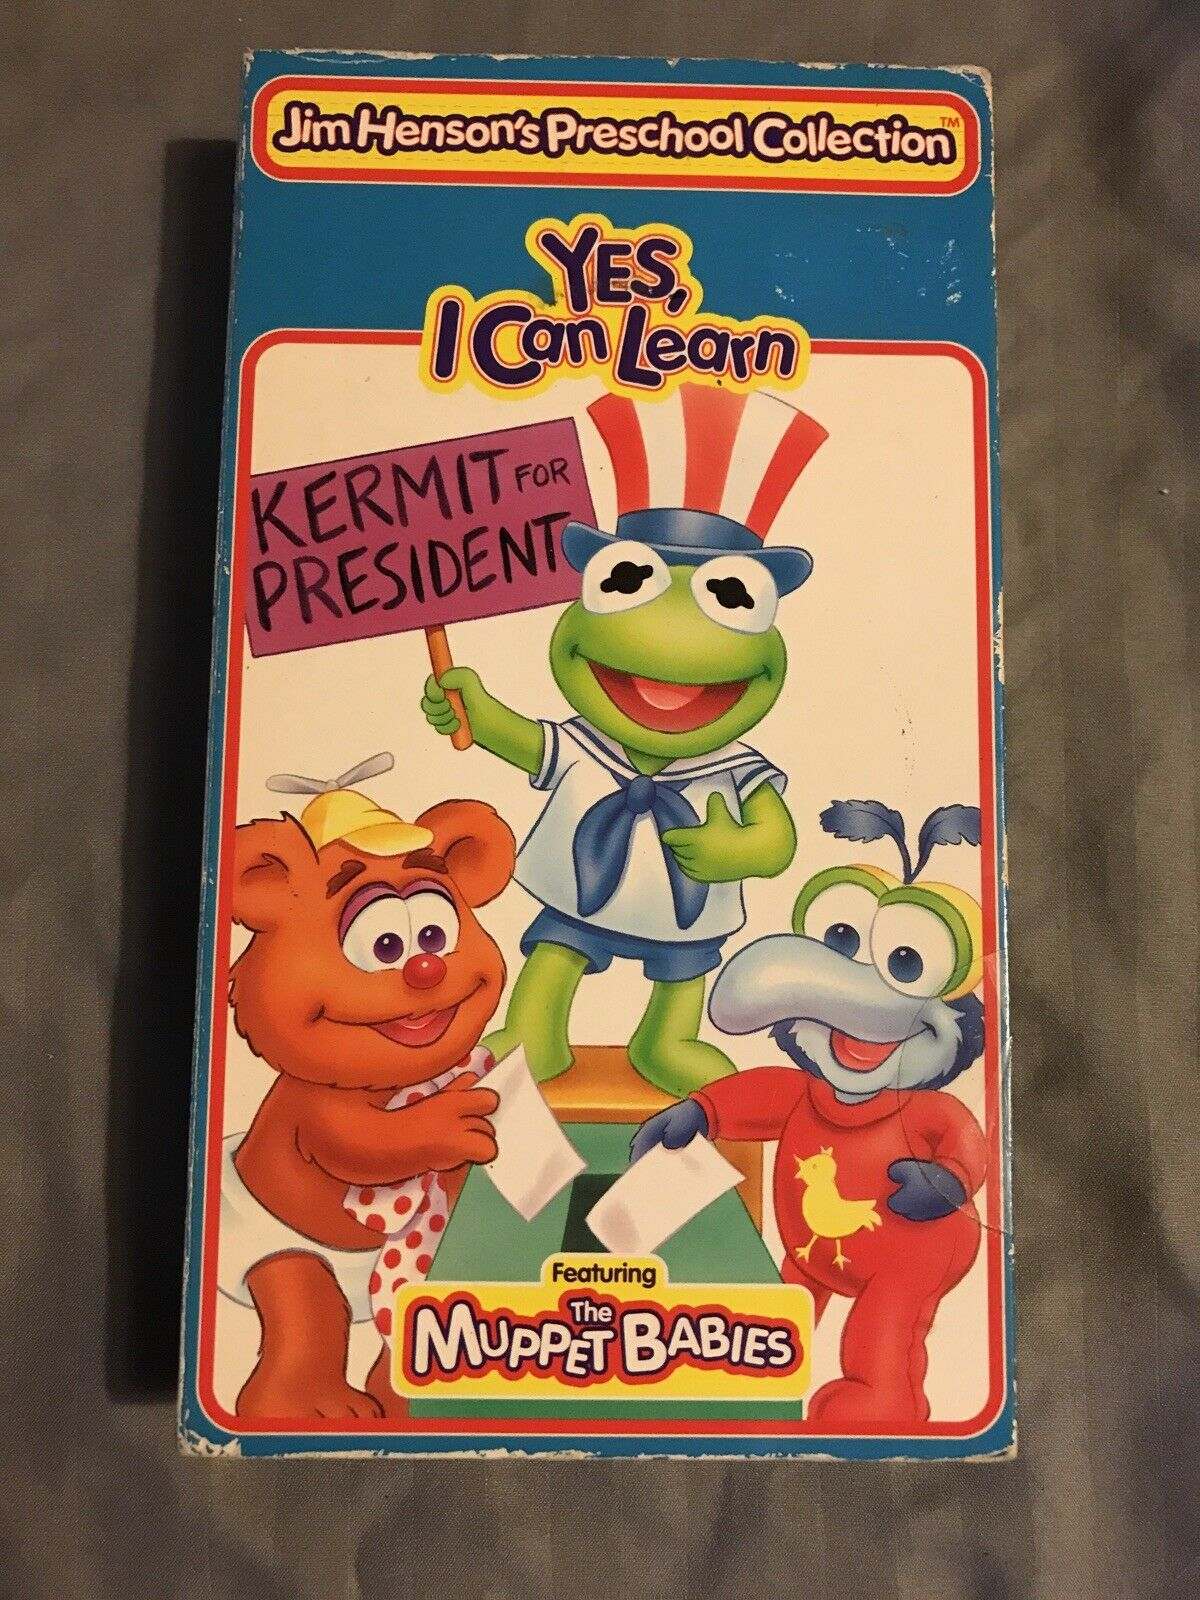 Muppet Babies: Yes, I Can Learn (1995 VHS)